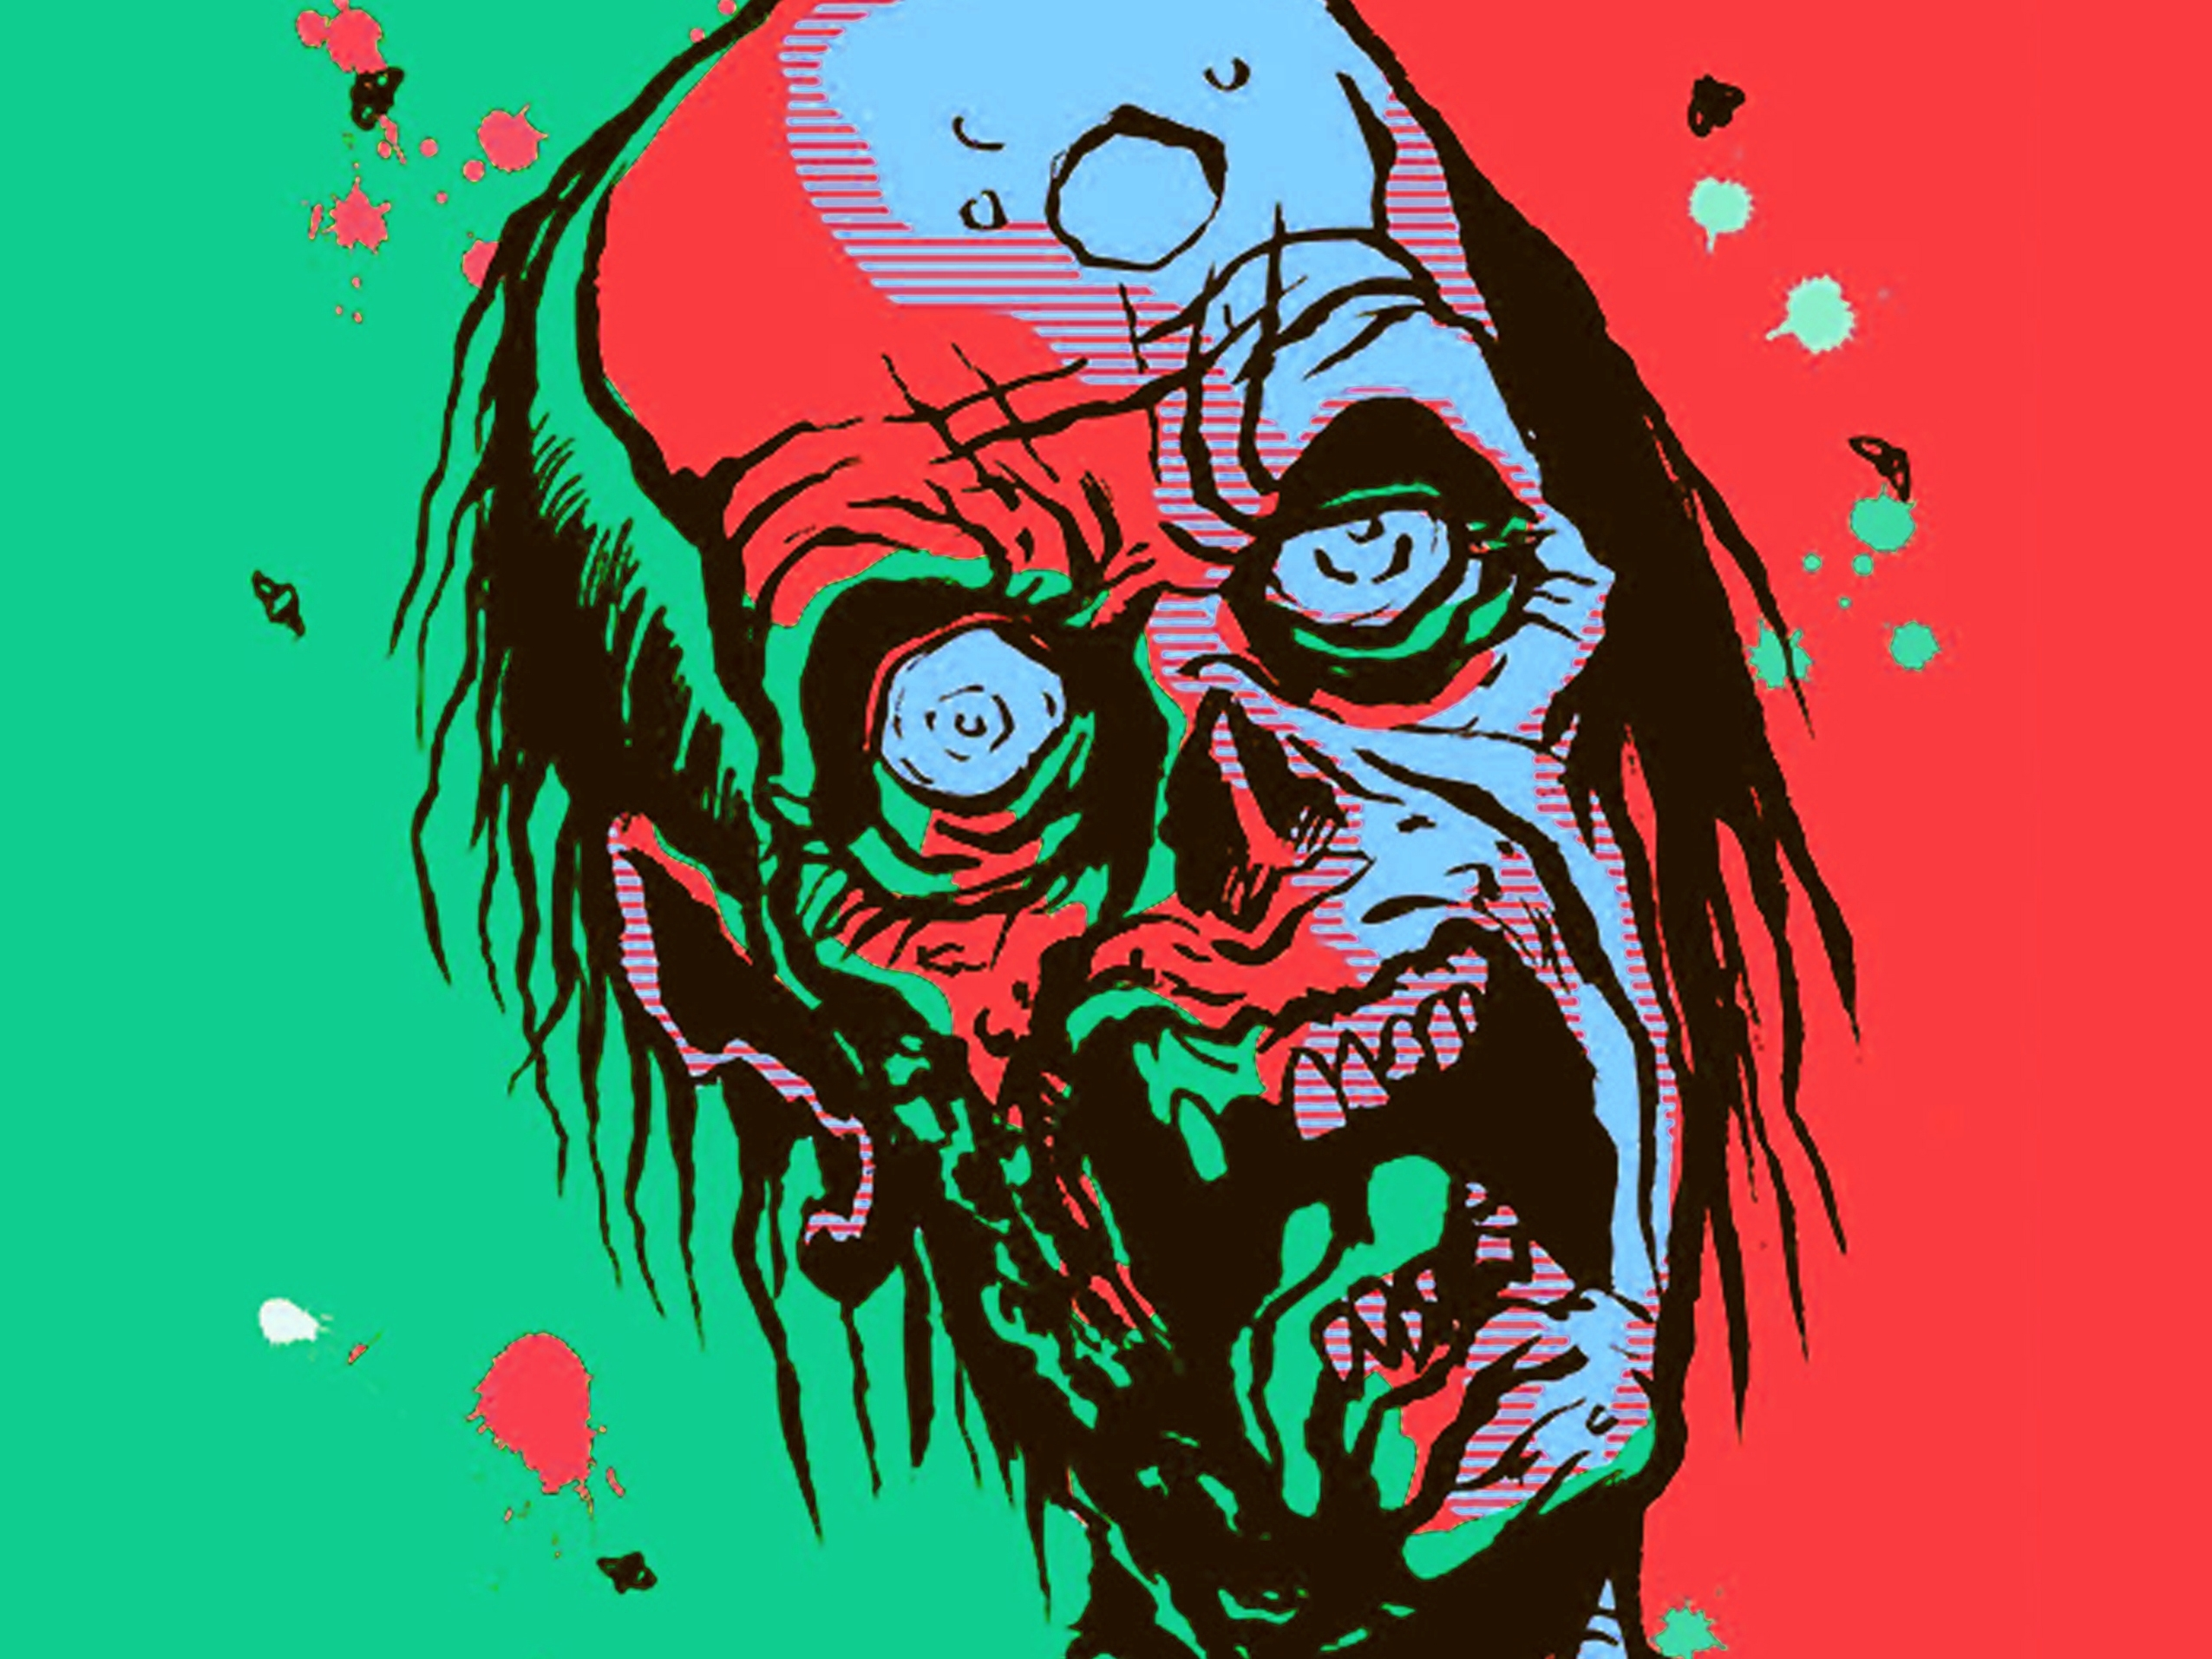 Cod Zombies Iphone Wallpaper Zombie Full Hd Wallpaper And Background Image 2550x1912